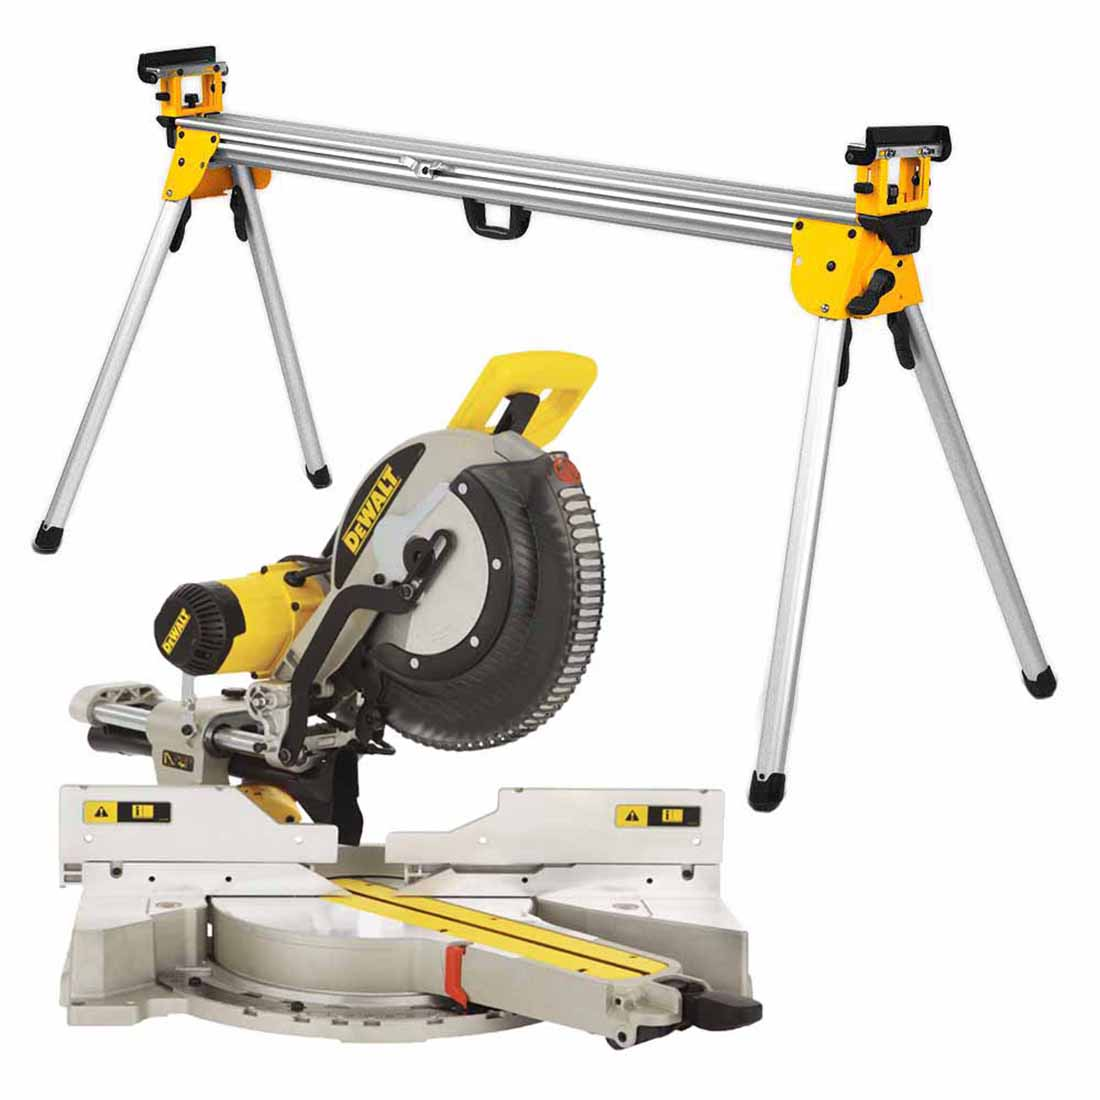 305mm Dual Bevel Slide Compound Mitre Saw & Stand Combo